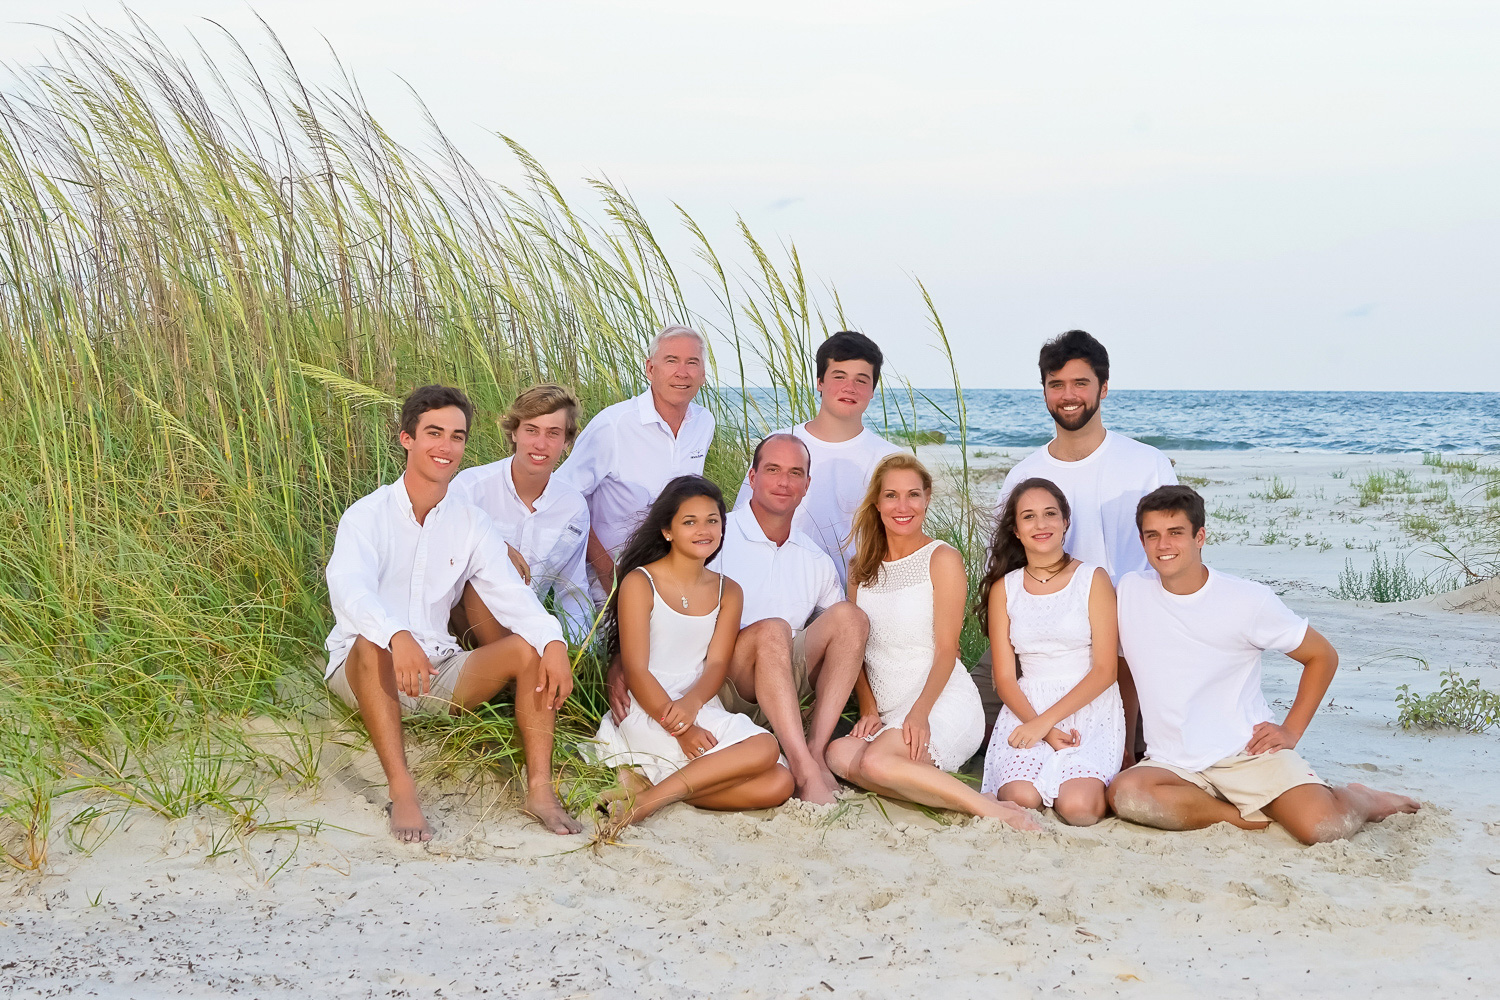 beach_portraits_beaufort-29.jpg